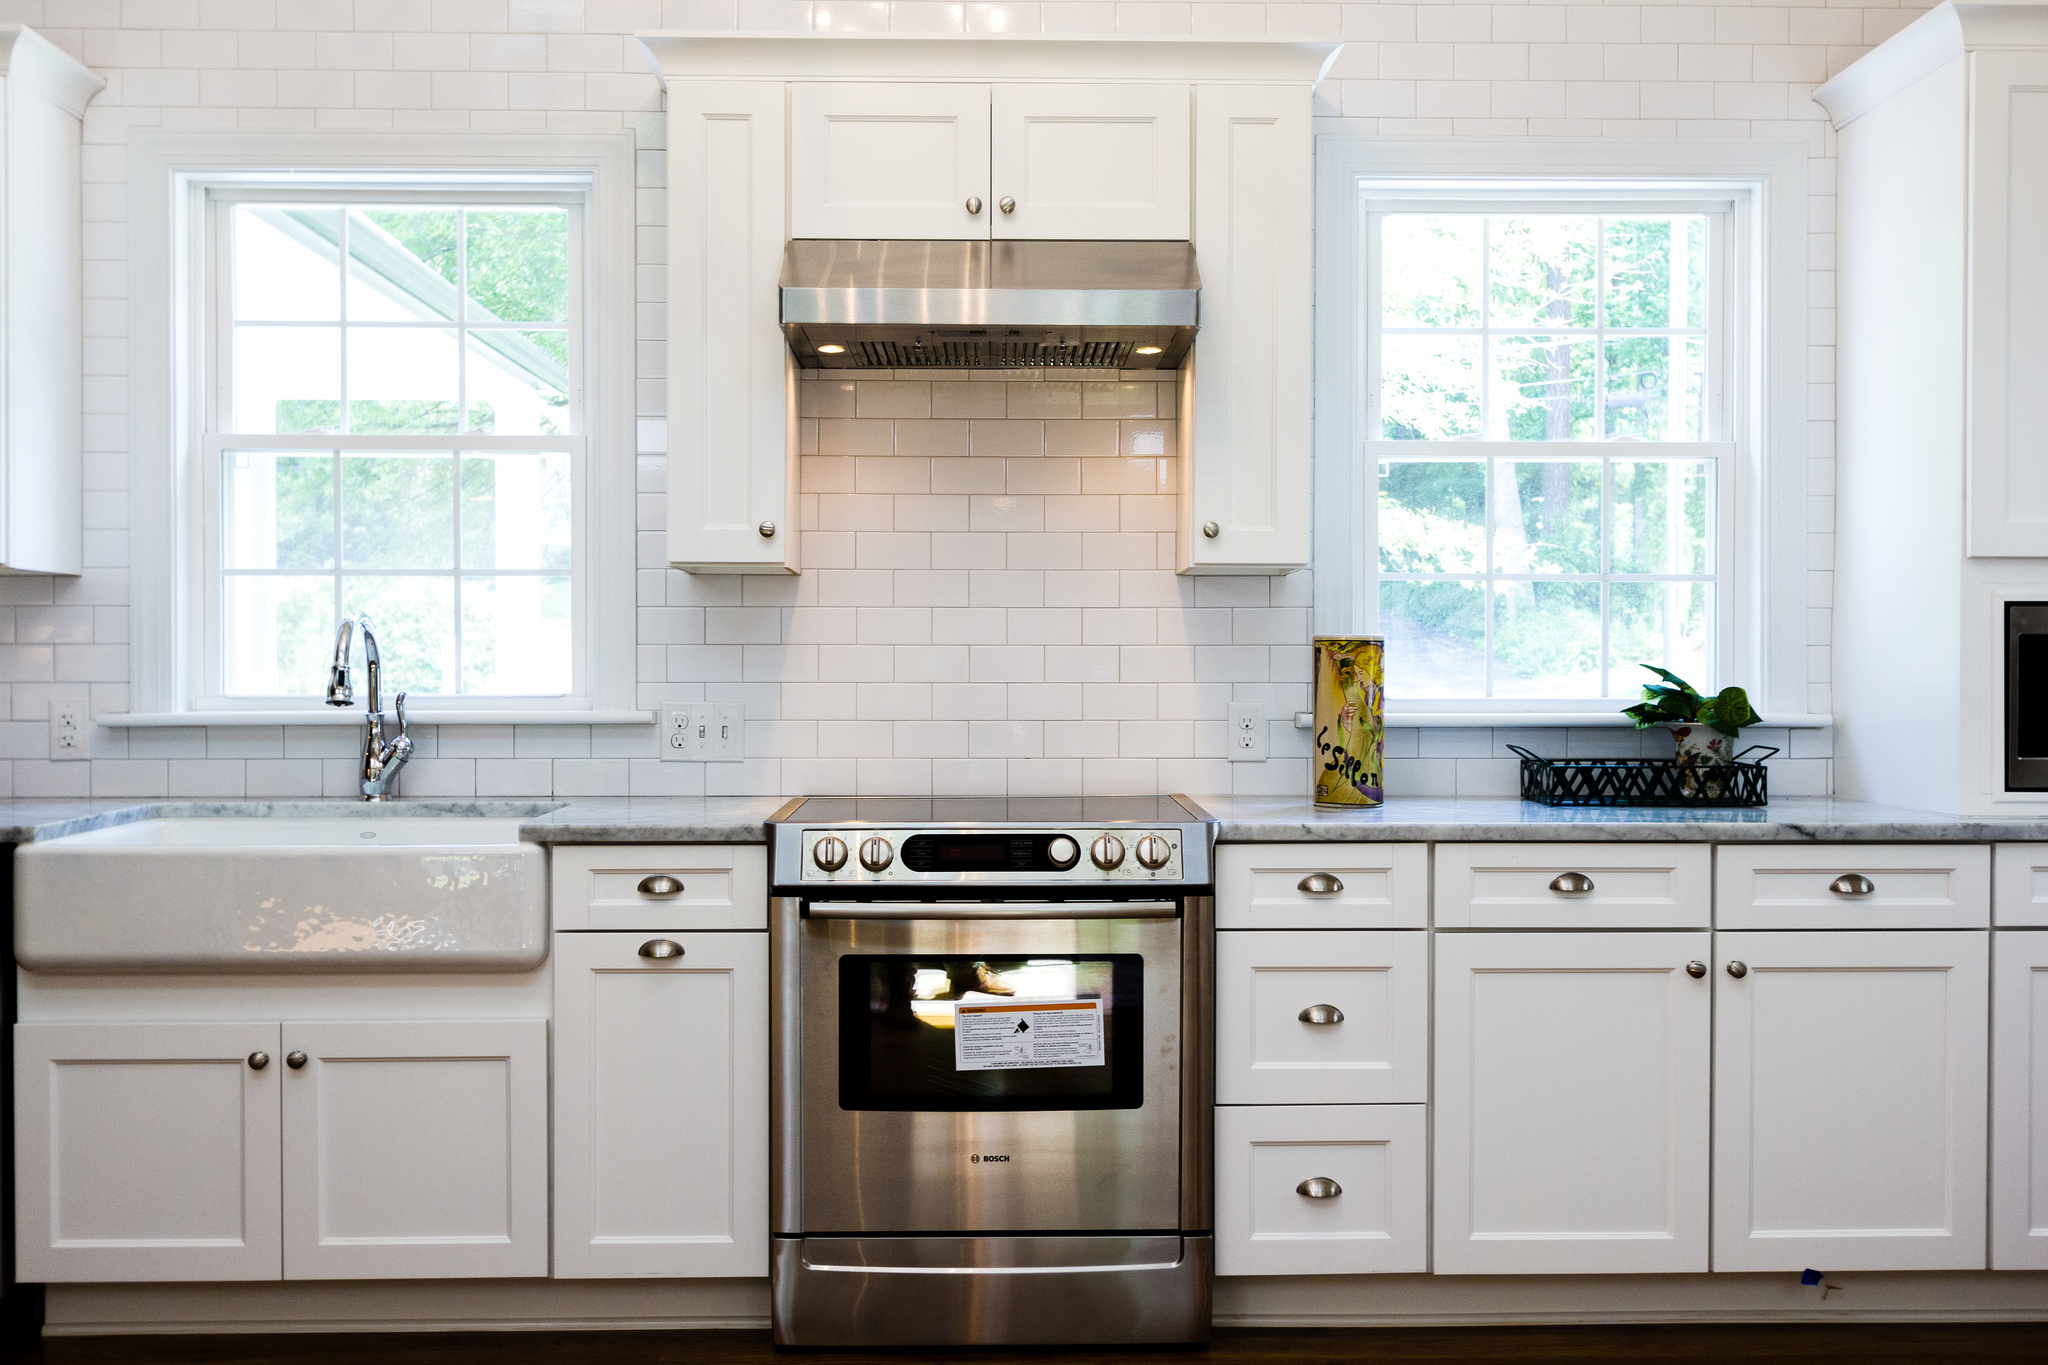 Good 6 Renovated Kitchen With White Subway Tile Marble And Farmhouse Sink,  Cobblestone DG On Remodelaholic